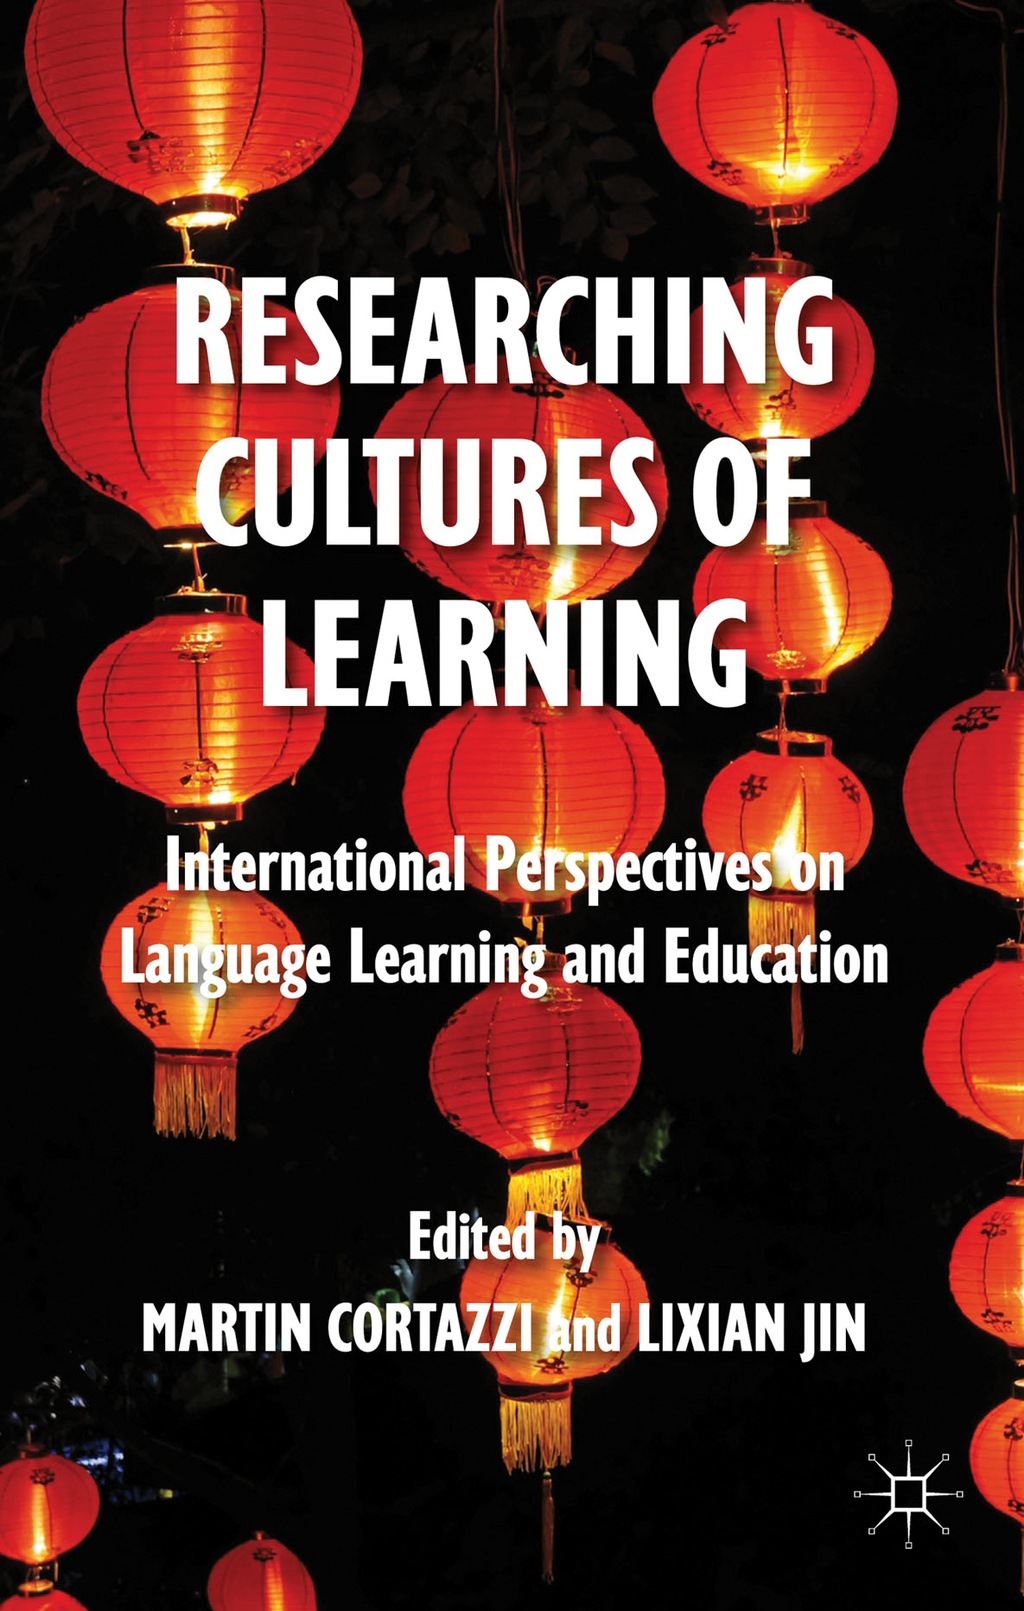 Researching Cultures of Learning International Perspectives on Language Learning and Education